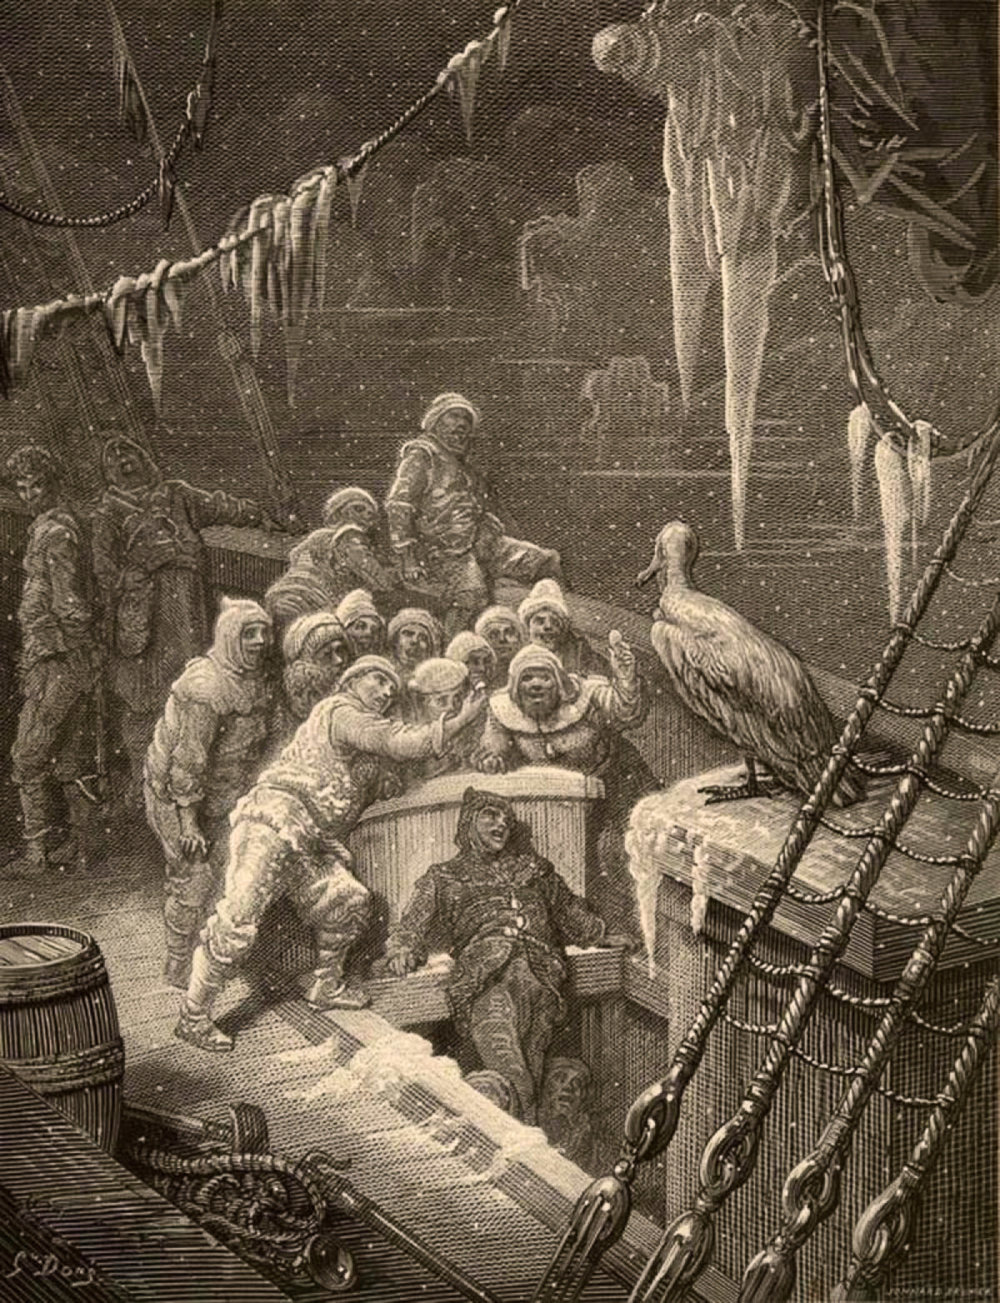 In the  Rime of the Ancient Mariner  an albatross lands onboard a ship; the crew then attempts to interpret its appearance. And their judgements point their collective finger at the bird and then one of their own.  They hastily blame the bird; it must have been responsible for their fate.